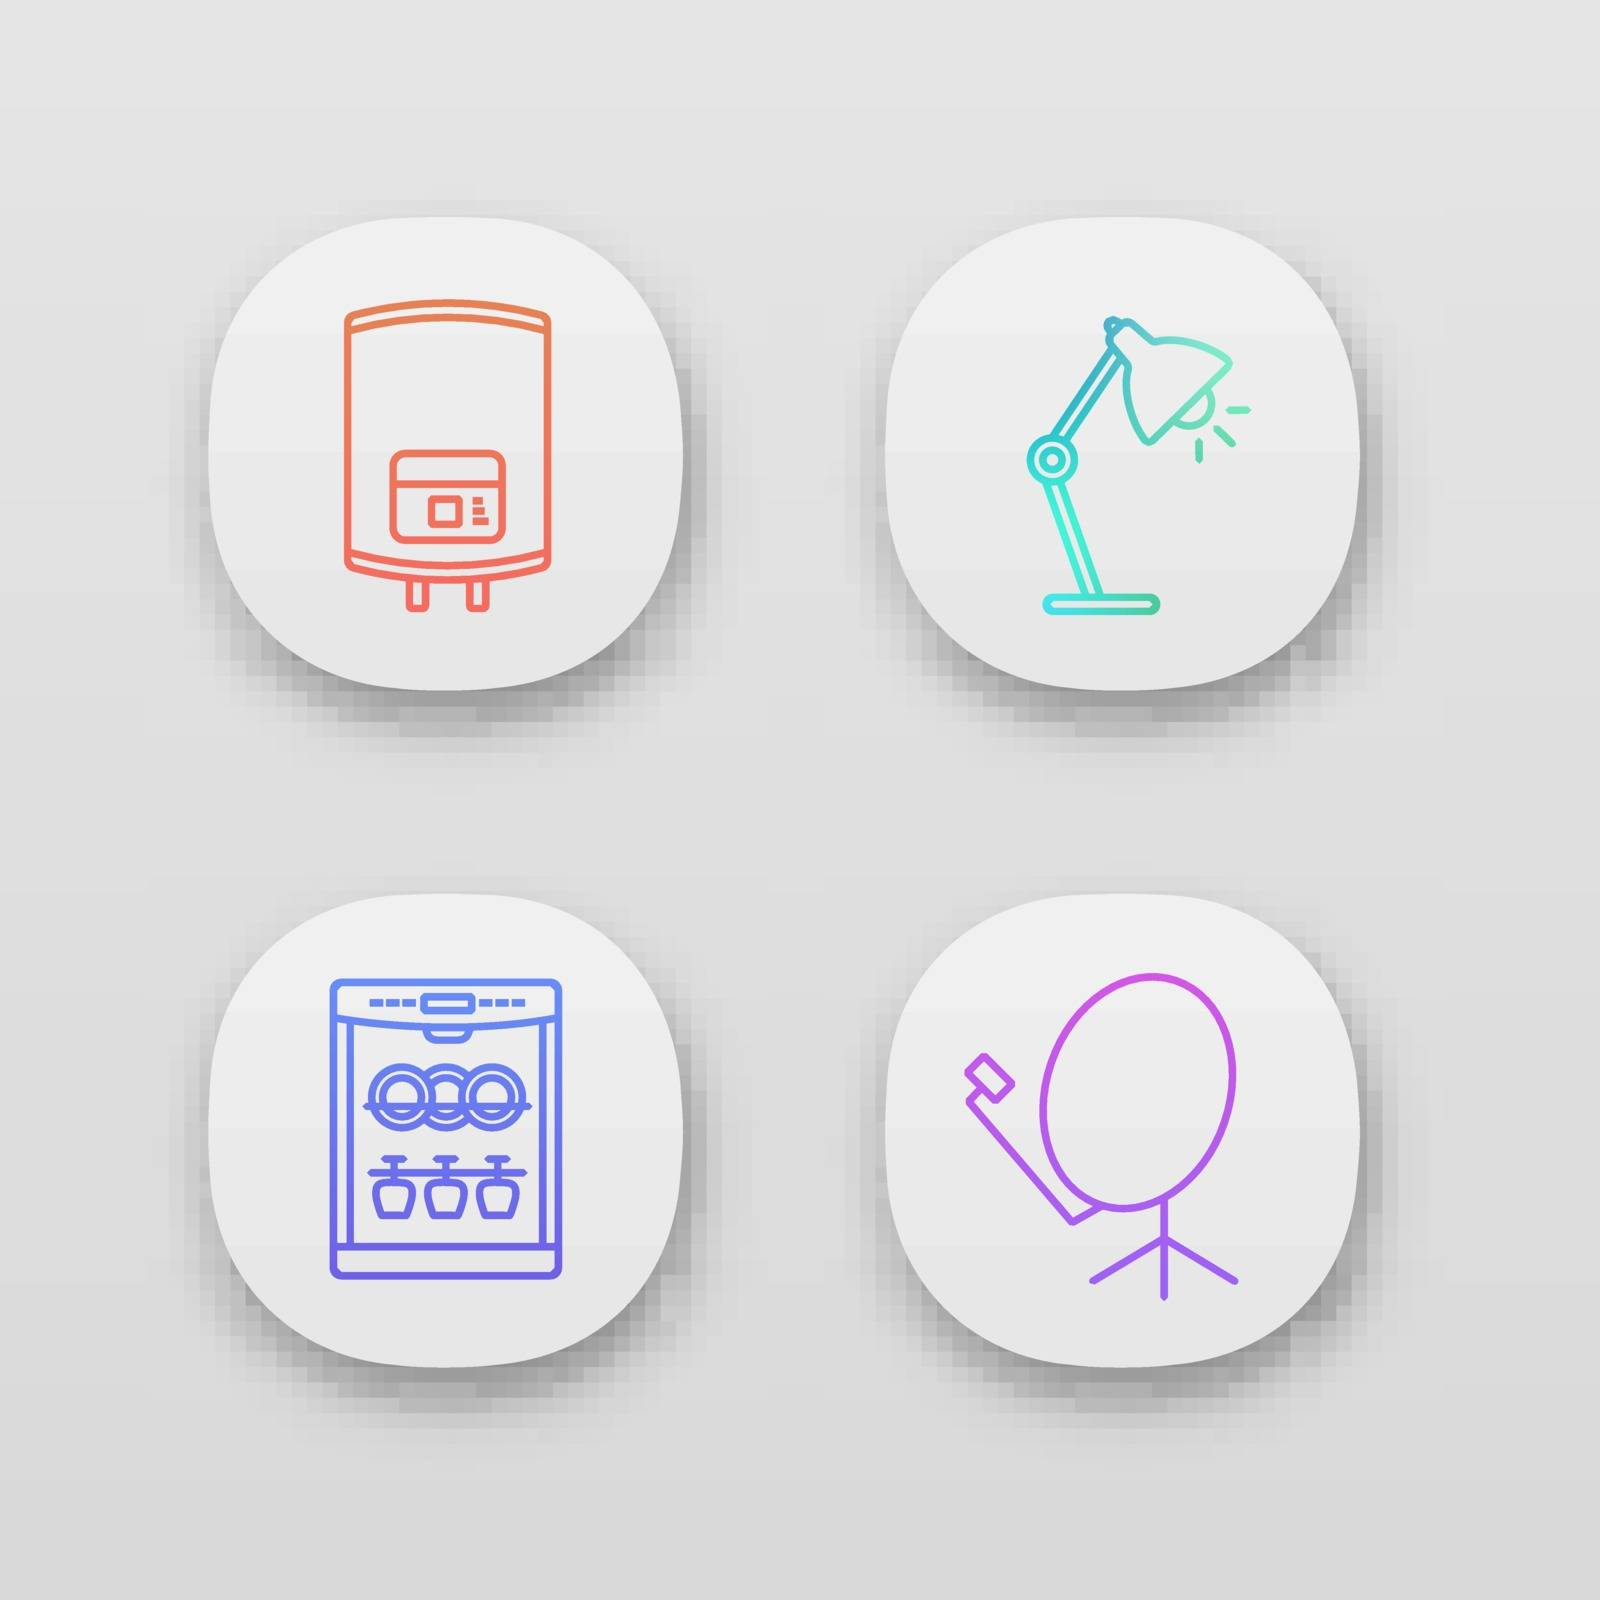 Household appliance app icons set. Electric water heater, table lamp, dishwasher, satellite dish. UI/UX user interface. Web or mobile applications. Vector isolated illustrations